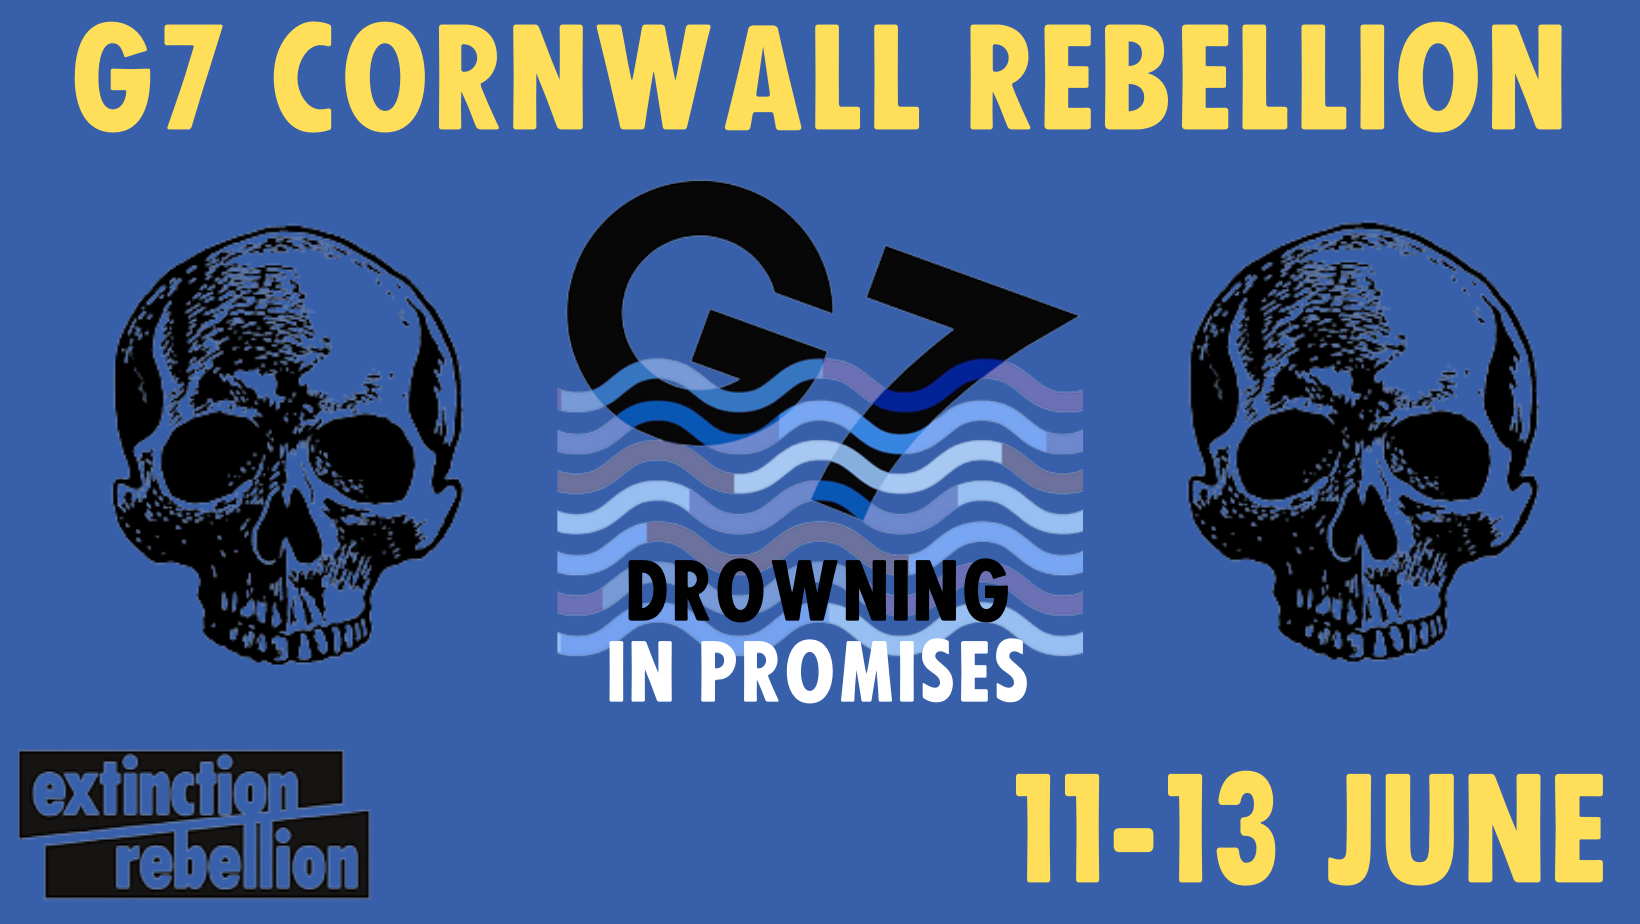 G7 Cornwall Rebellion - click for details